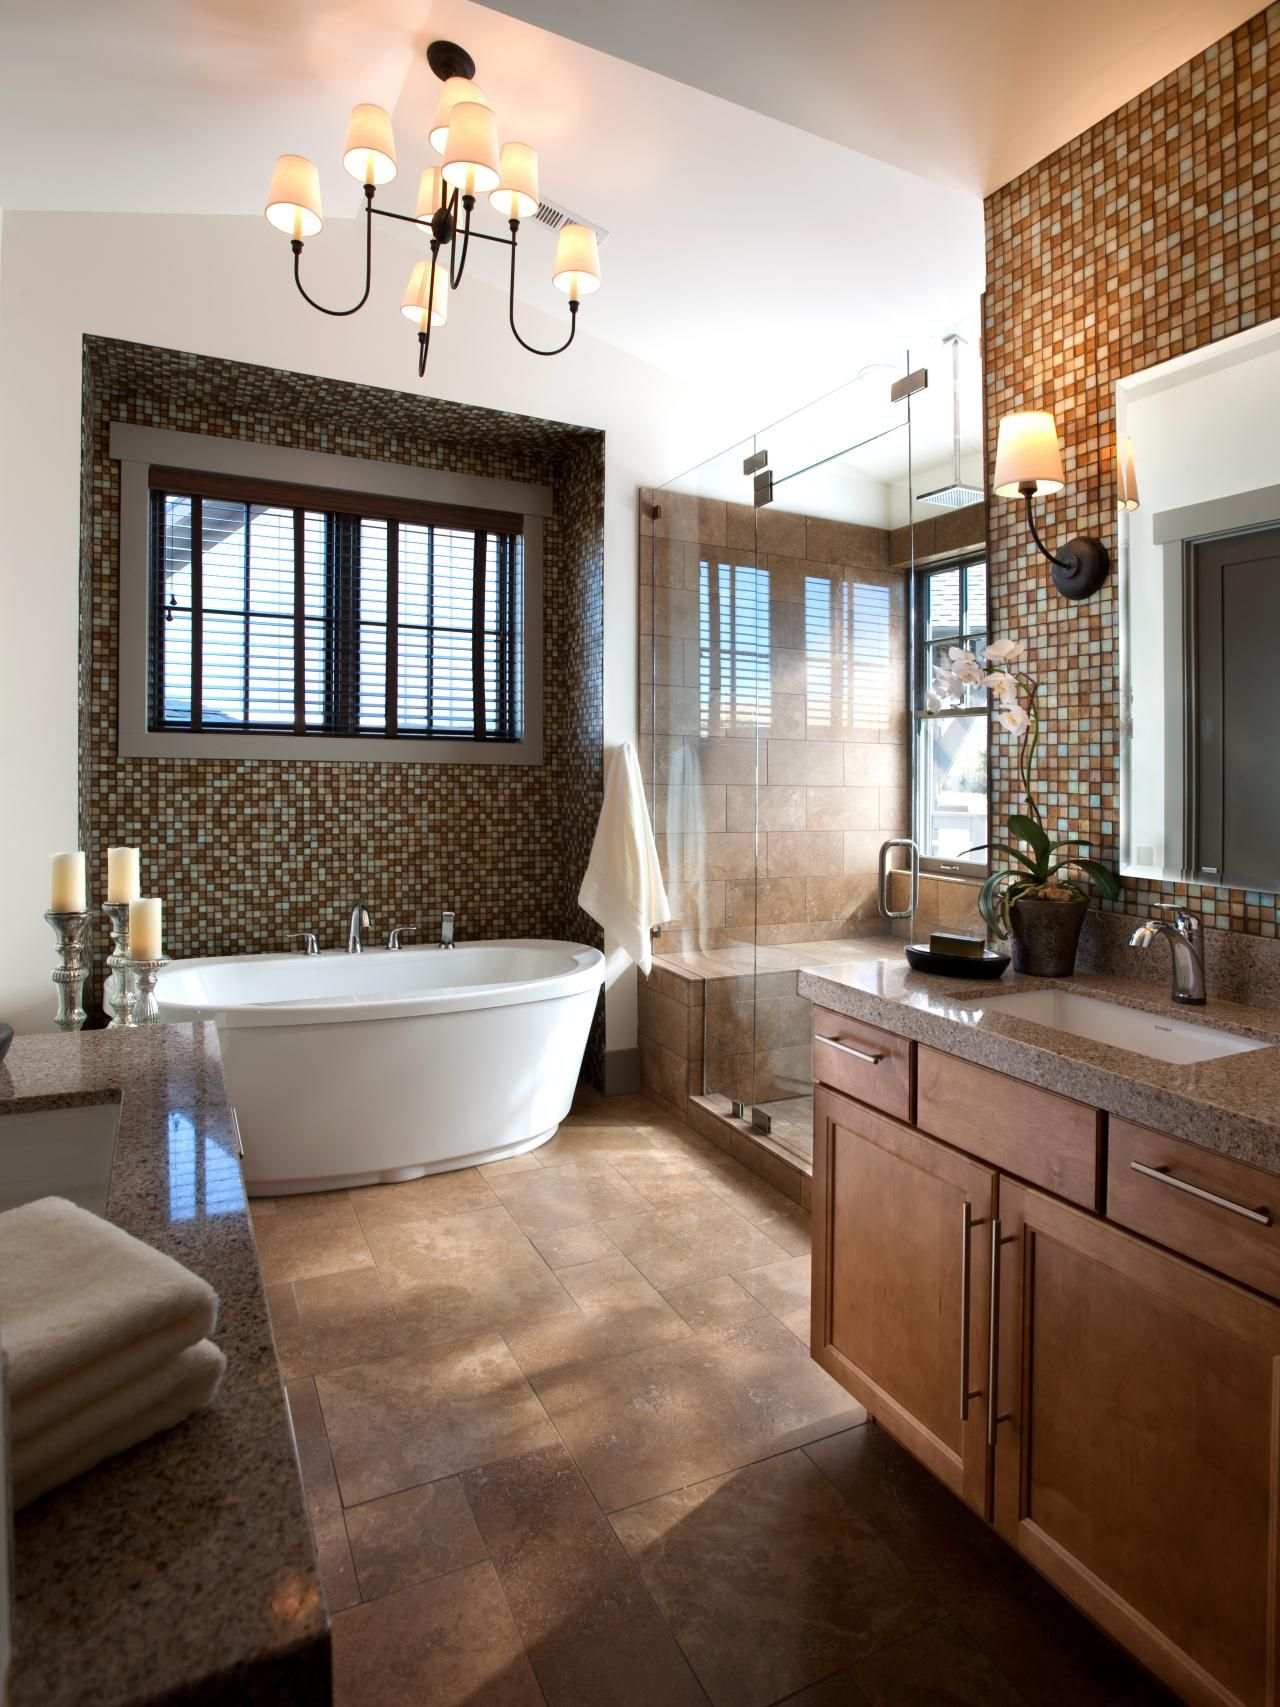 Transitional bathrooms pictures ideas u tips from master